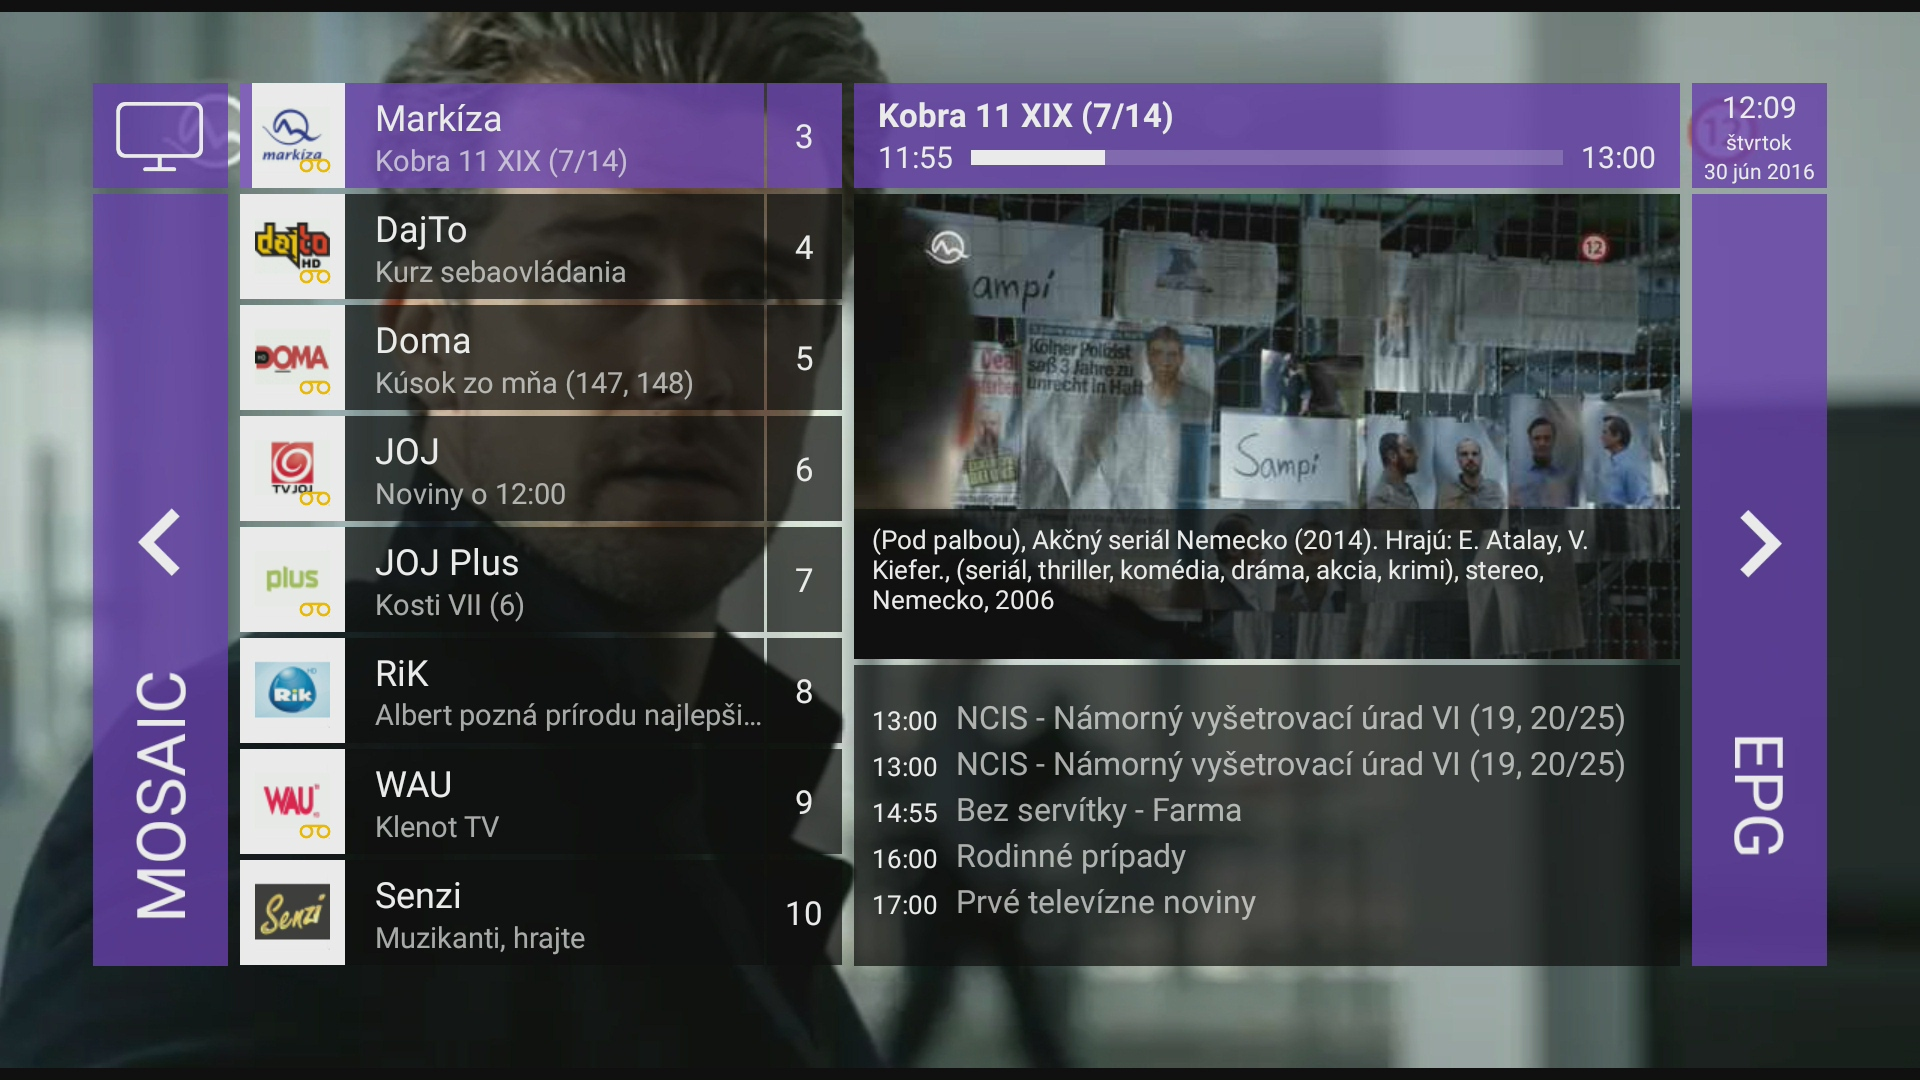 EPG screenshot